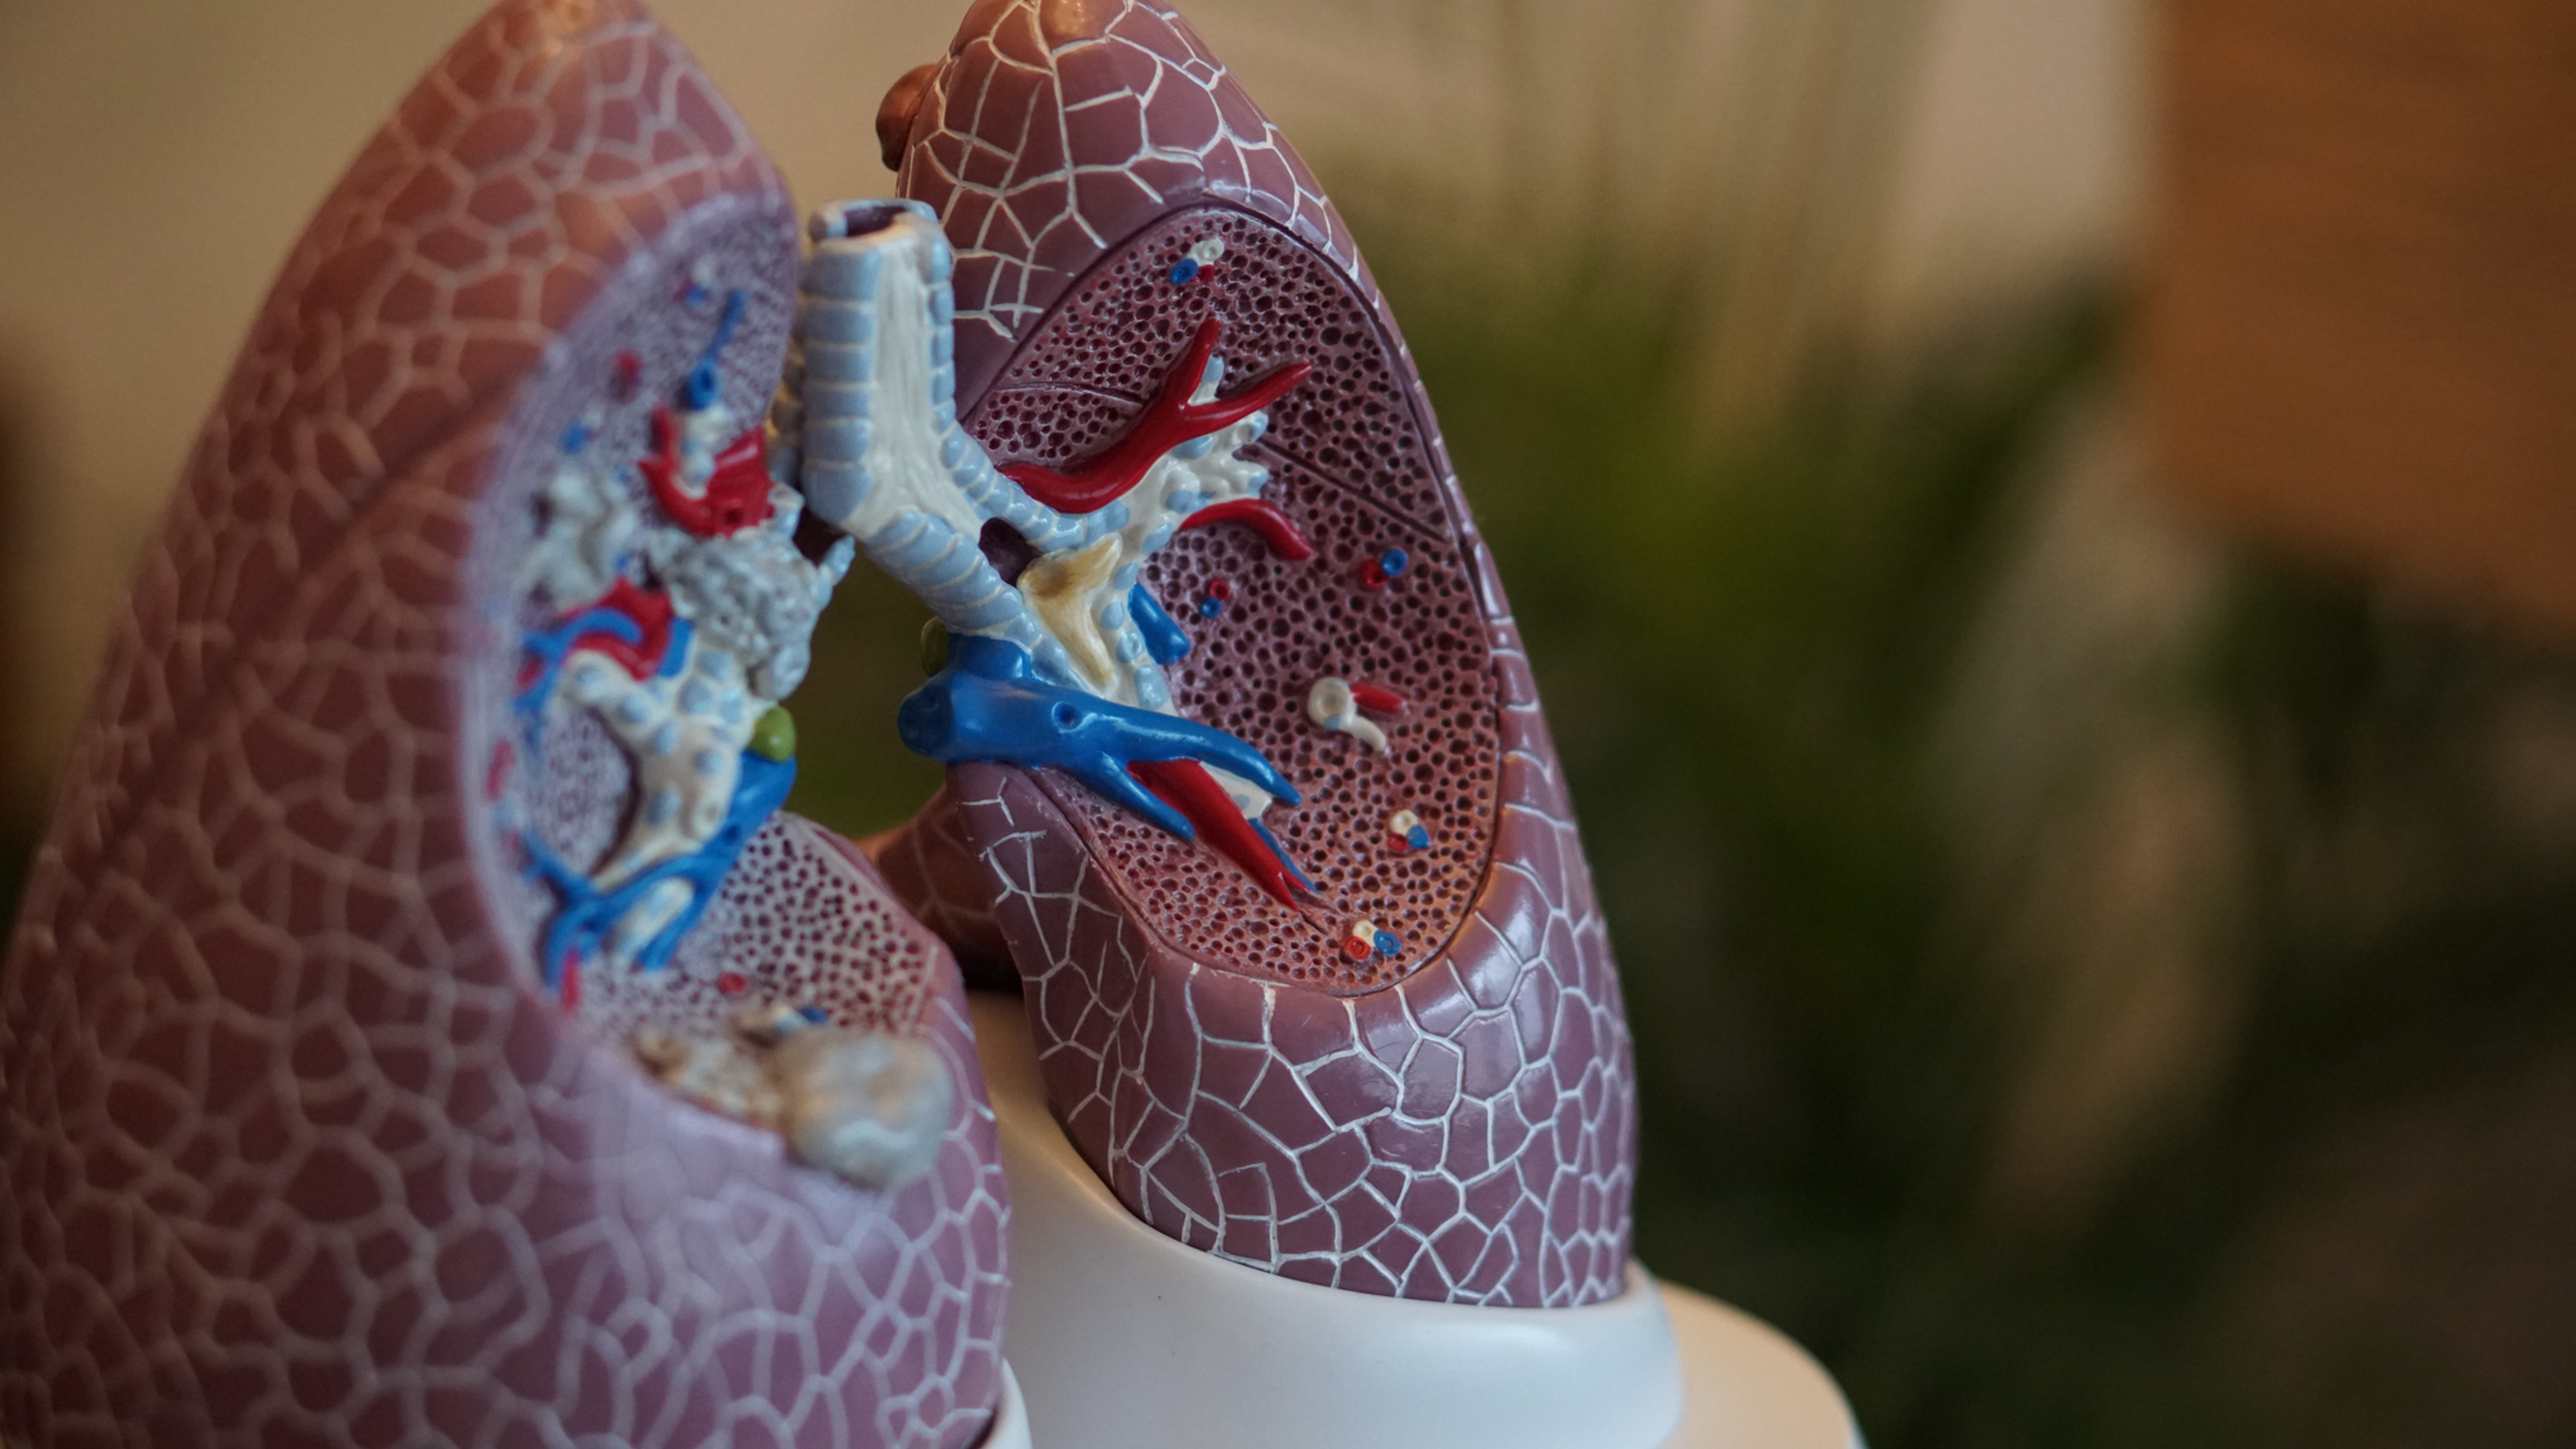 RCN Accredited Asthma/COPD Course